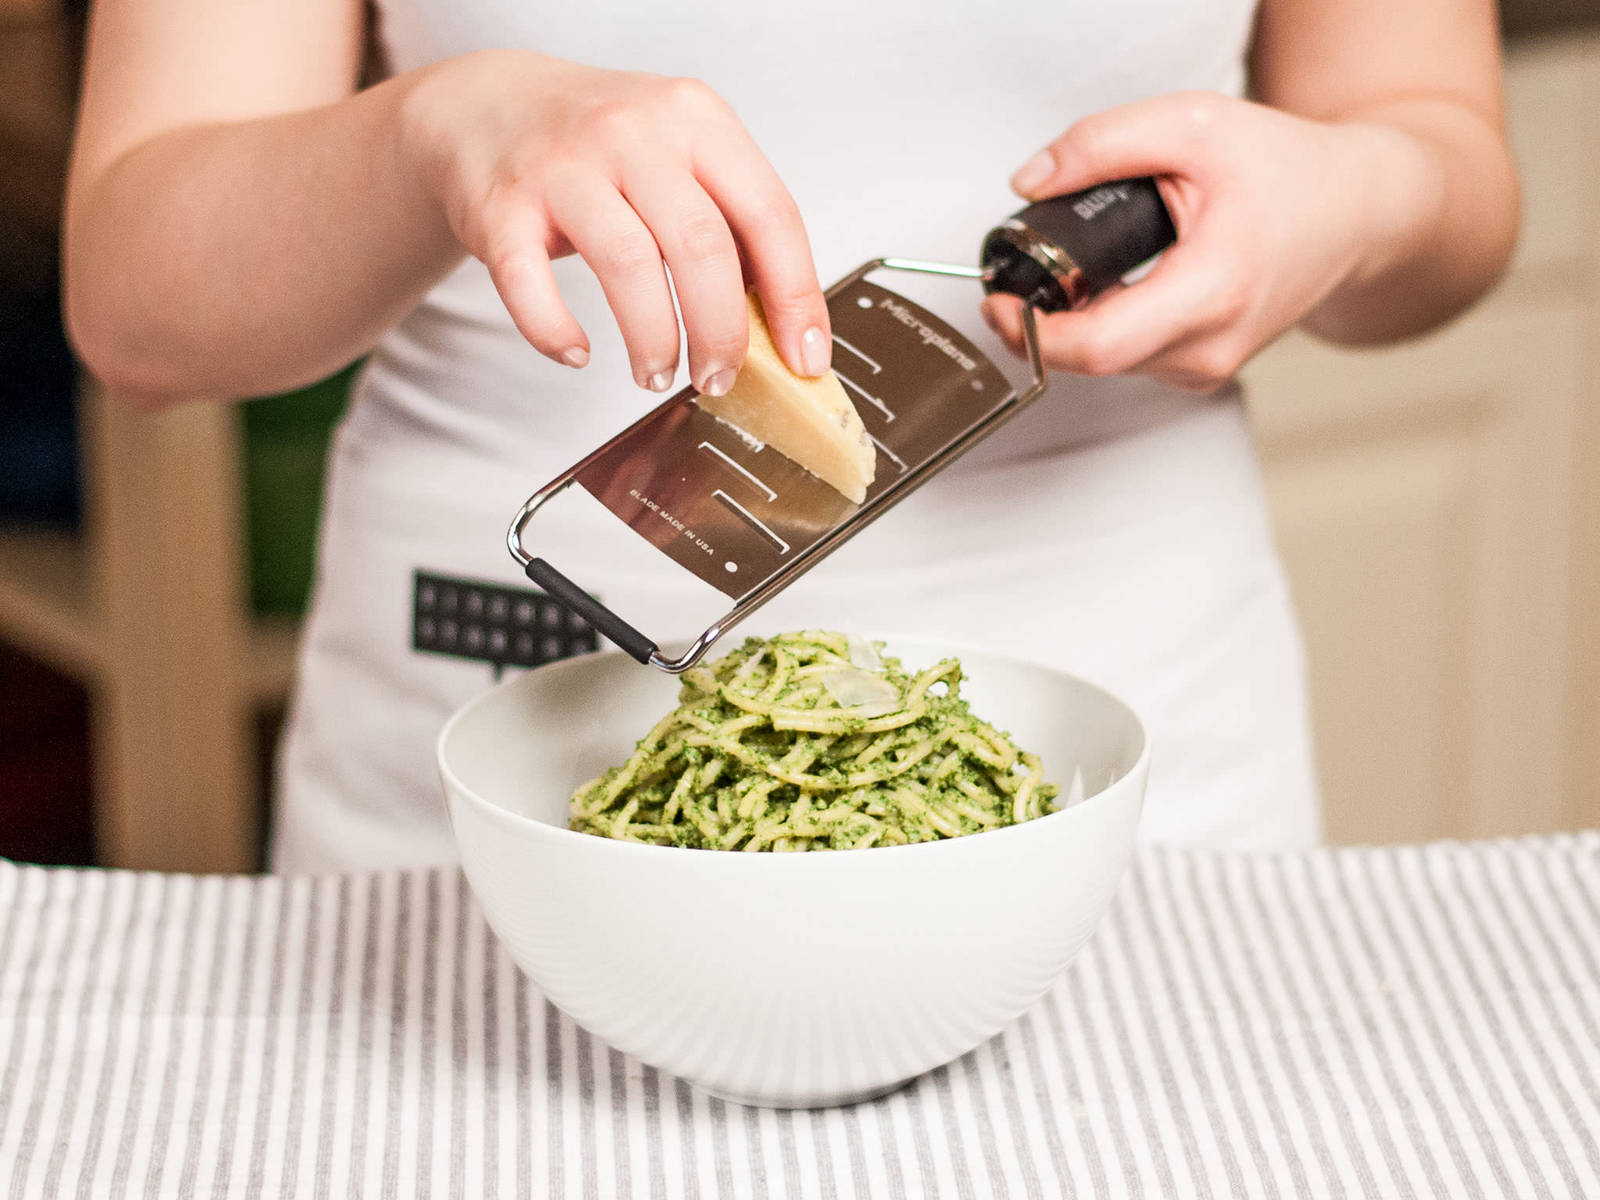 In a large bowl, combine cooked pasta with yogurt-pesto. If the pasta seems too dry, add some of the previously saved pasta water. Serve with shavings of Parmesan cheese.